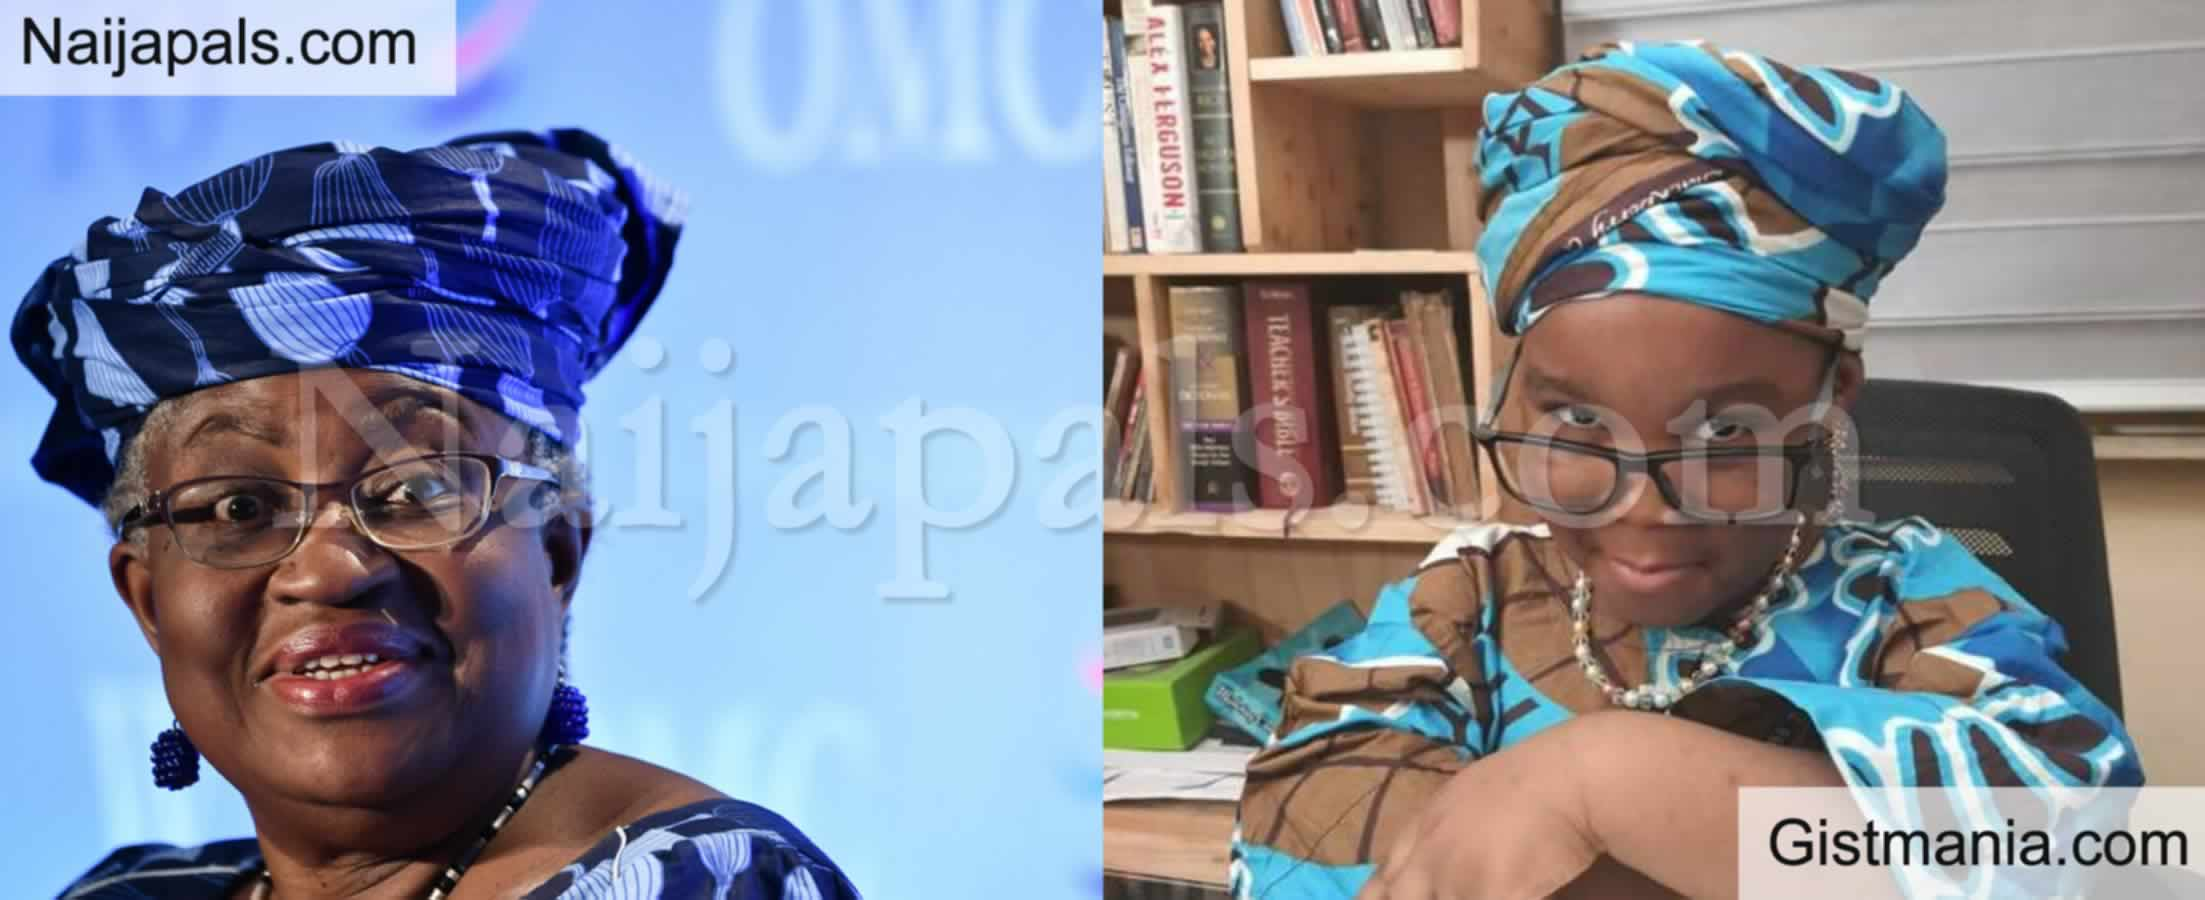 <img alt='.' class='lazyload' data-src='https://img.gistmania.com/emot/photo.png' /><b>Okonjo-Iweala Honours 4-year-old Girl Who Dressed to Look Like Her (Photo)</b>